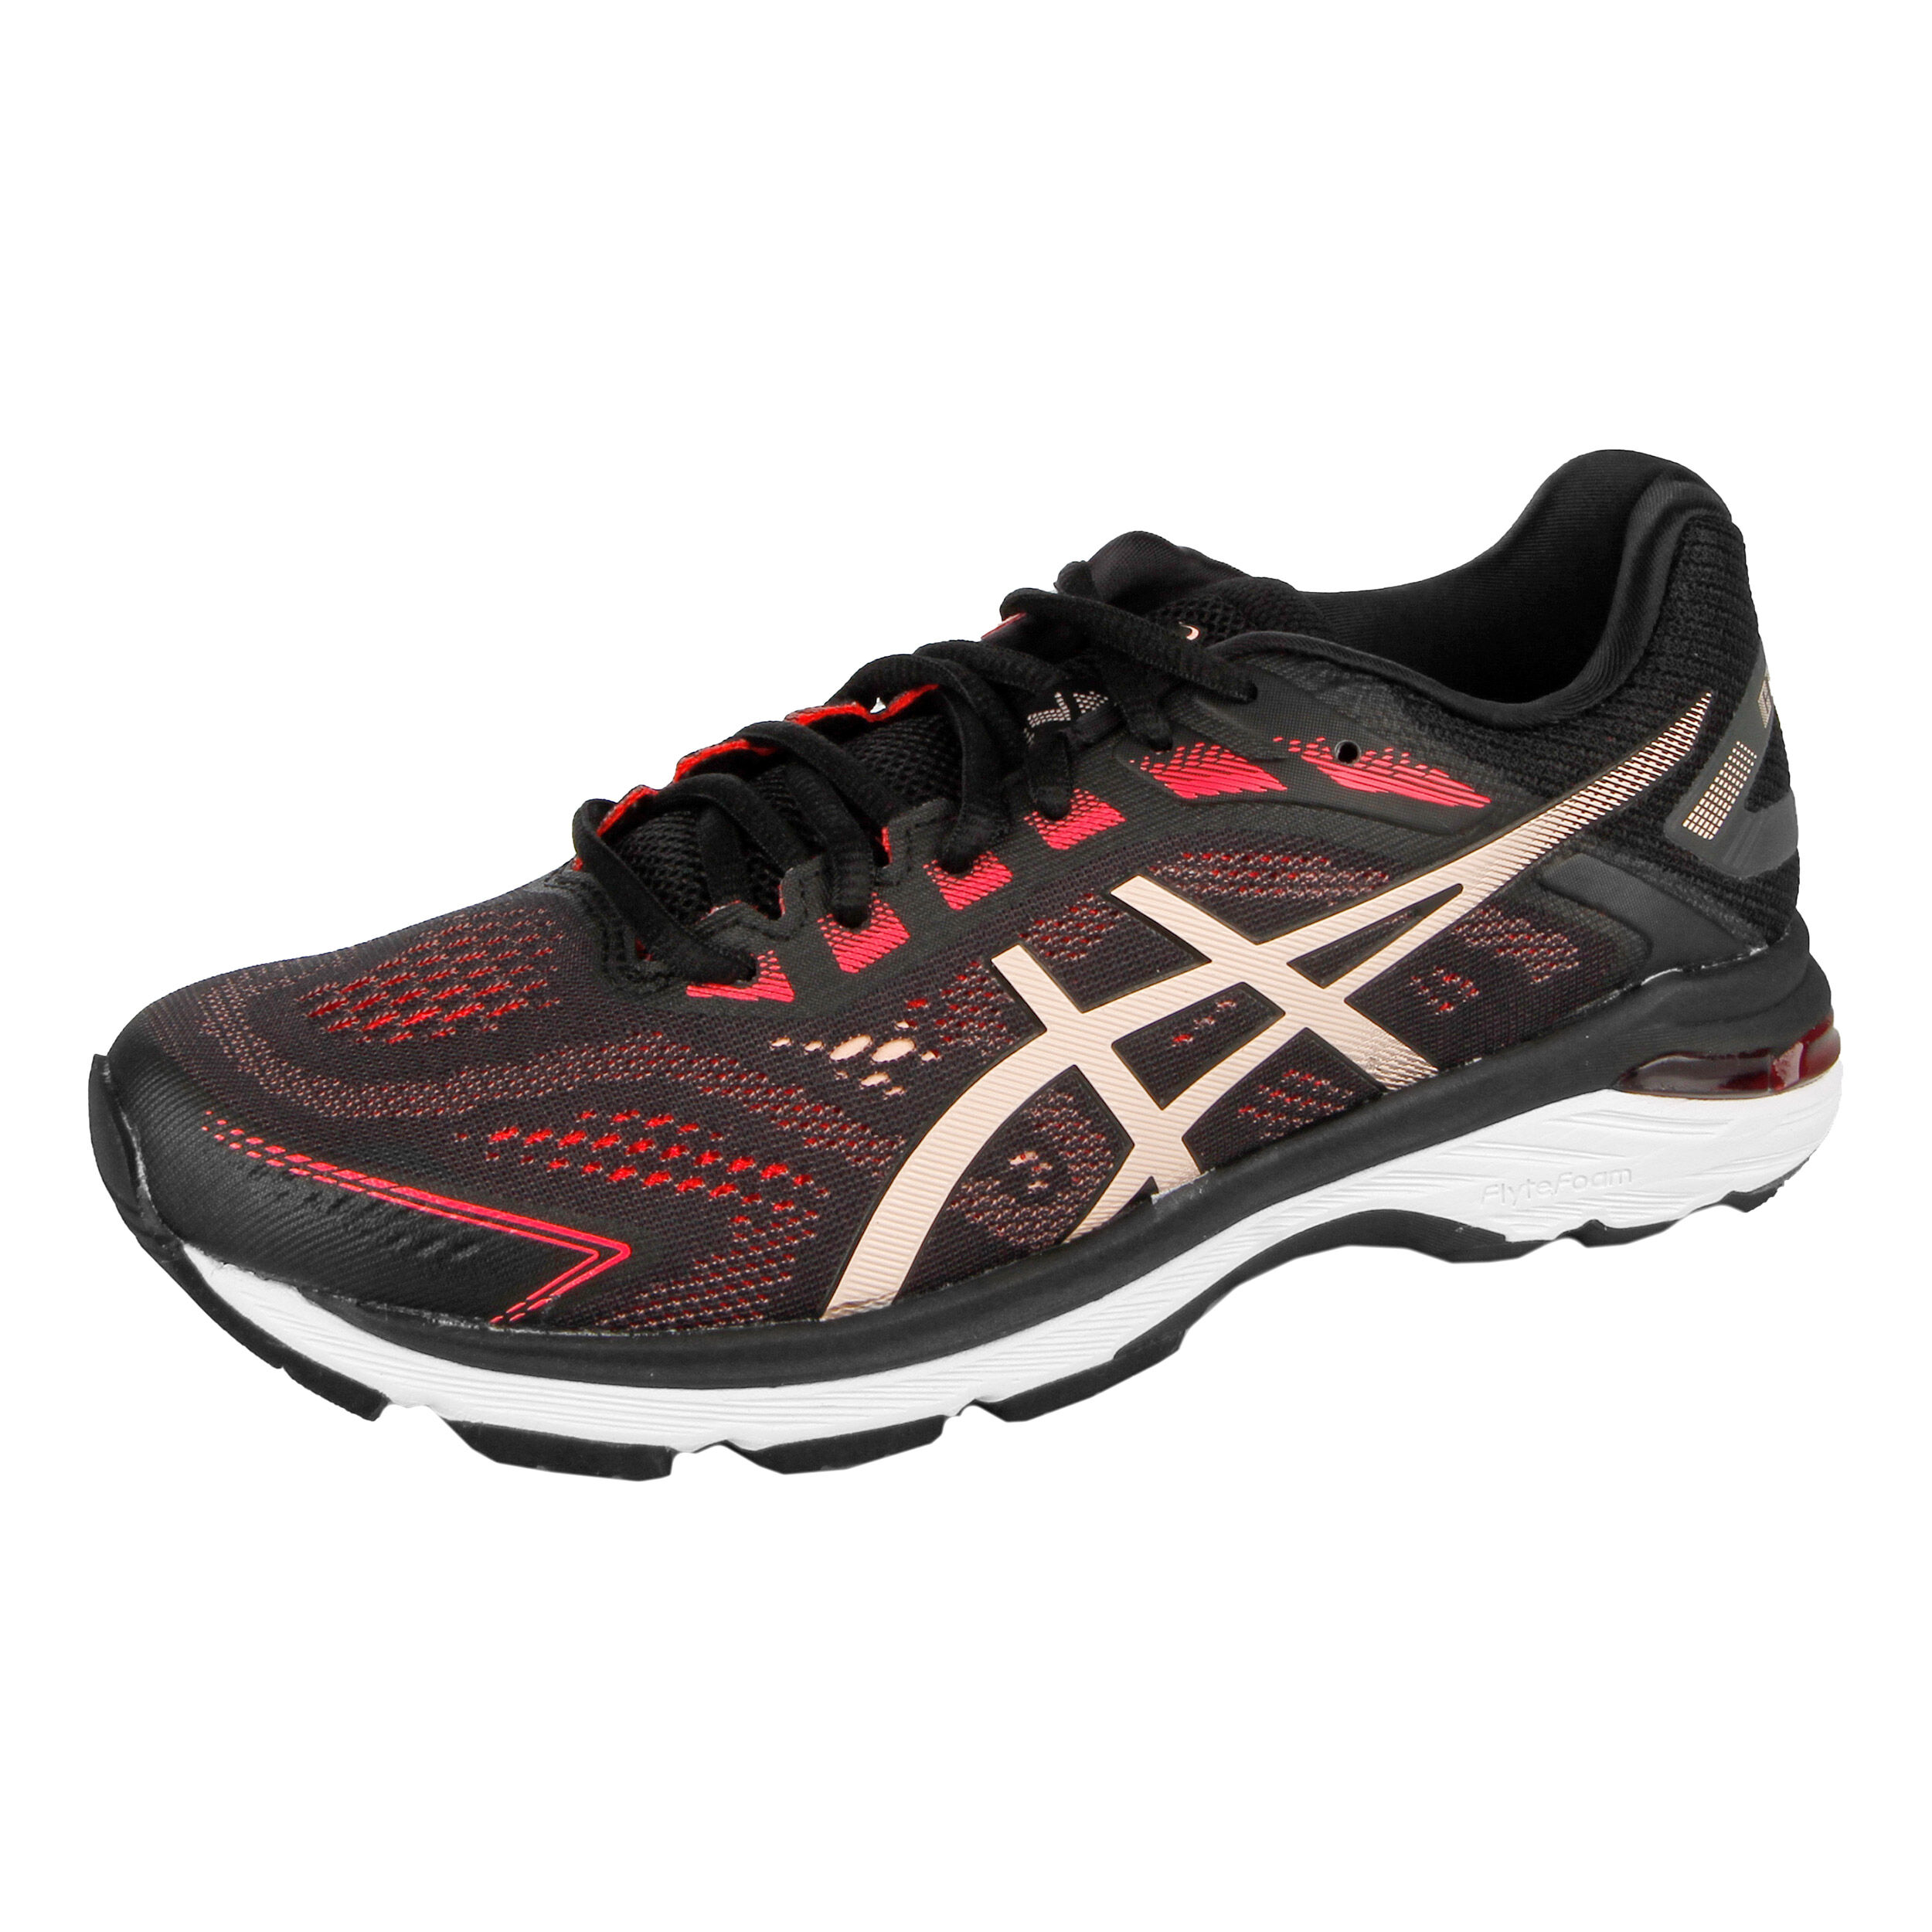 buy Asics GT-2000 7 Stability Running Shoe Women - Black ...